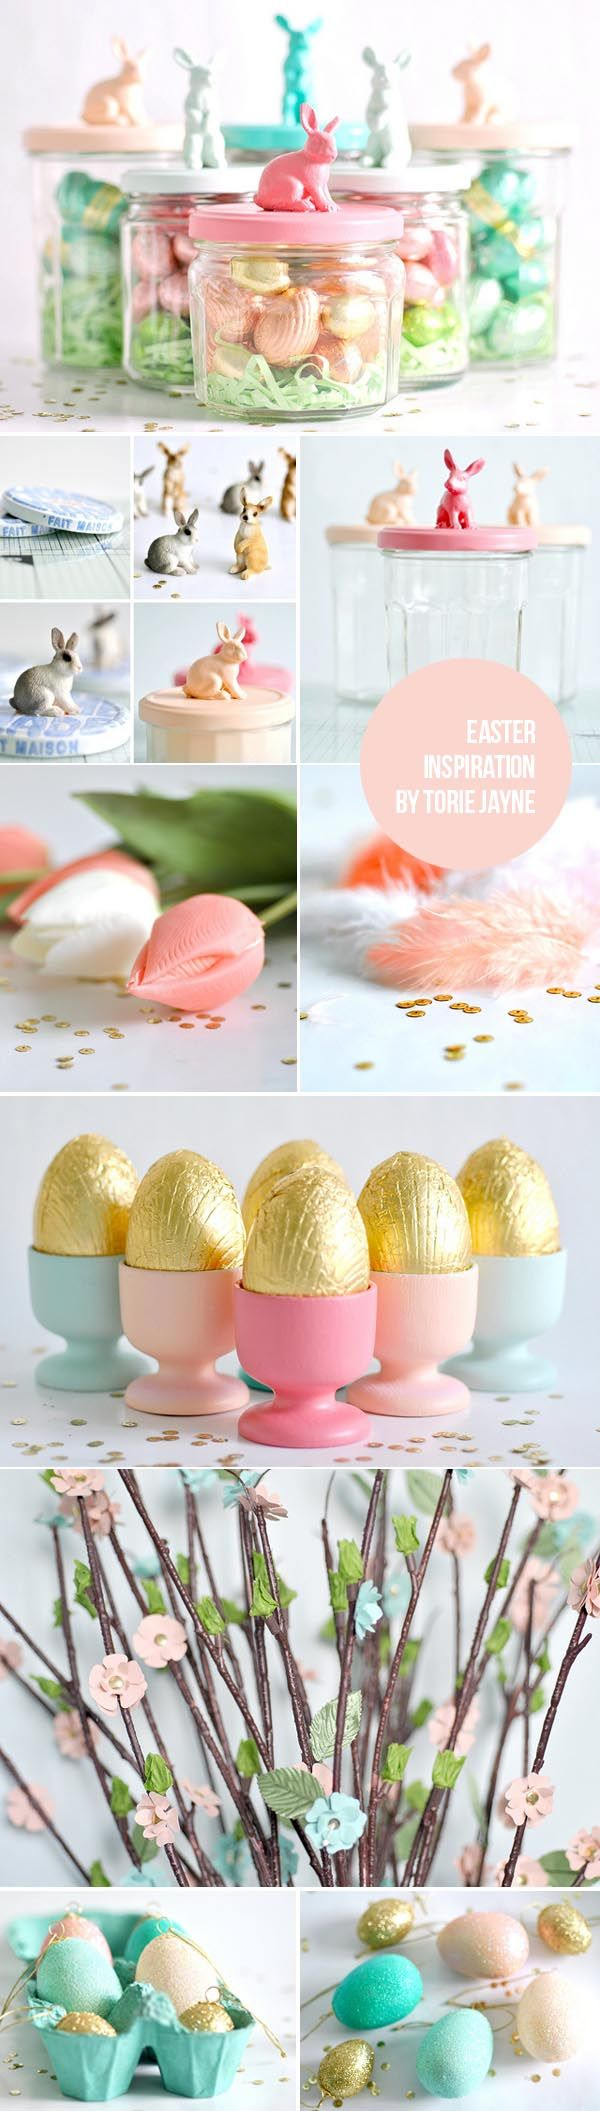 Love the bunny jars!  A little spray paint and some glue… these would be adorable!